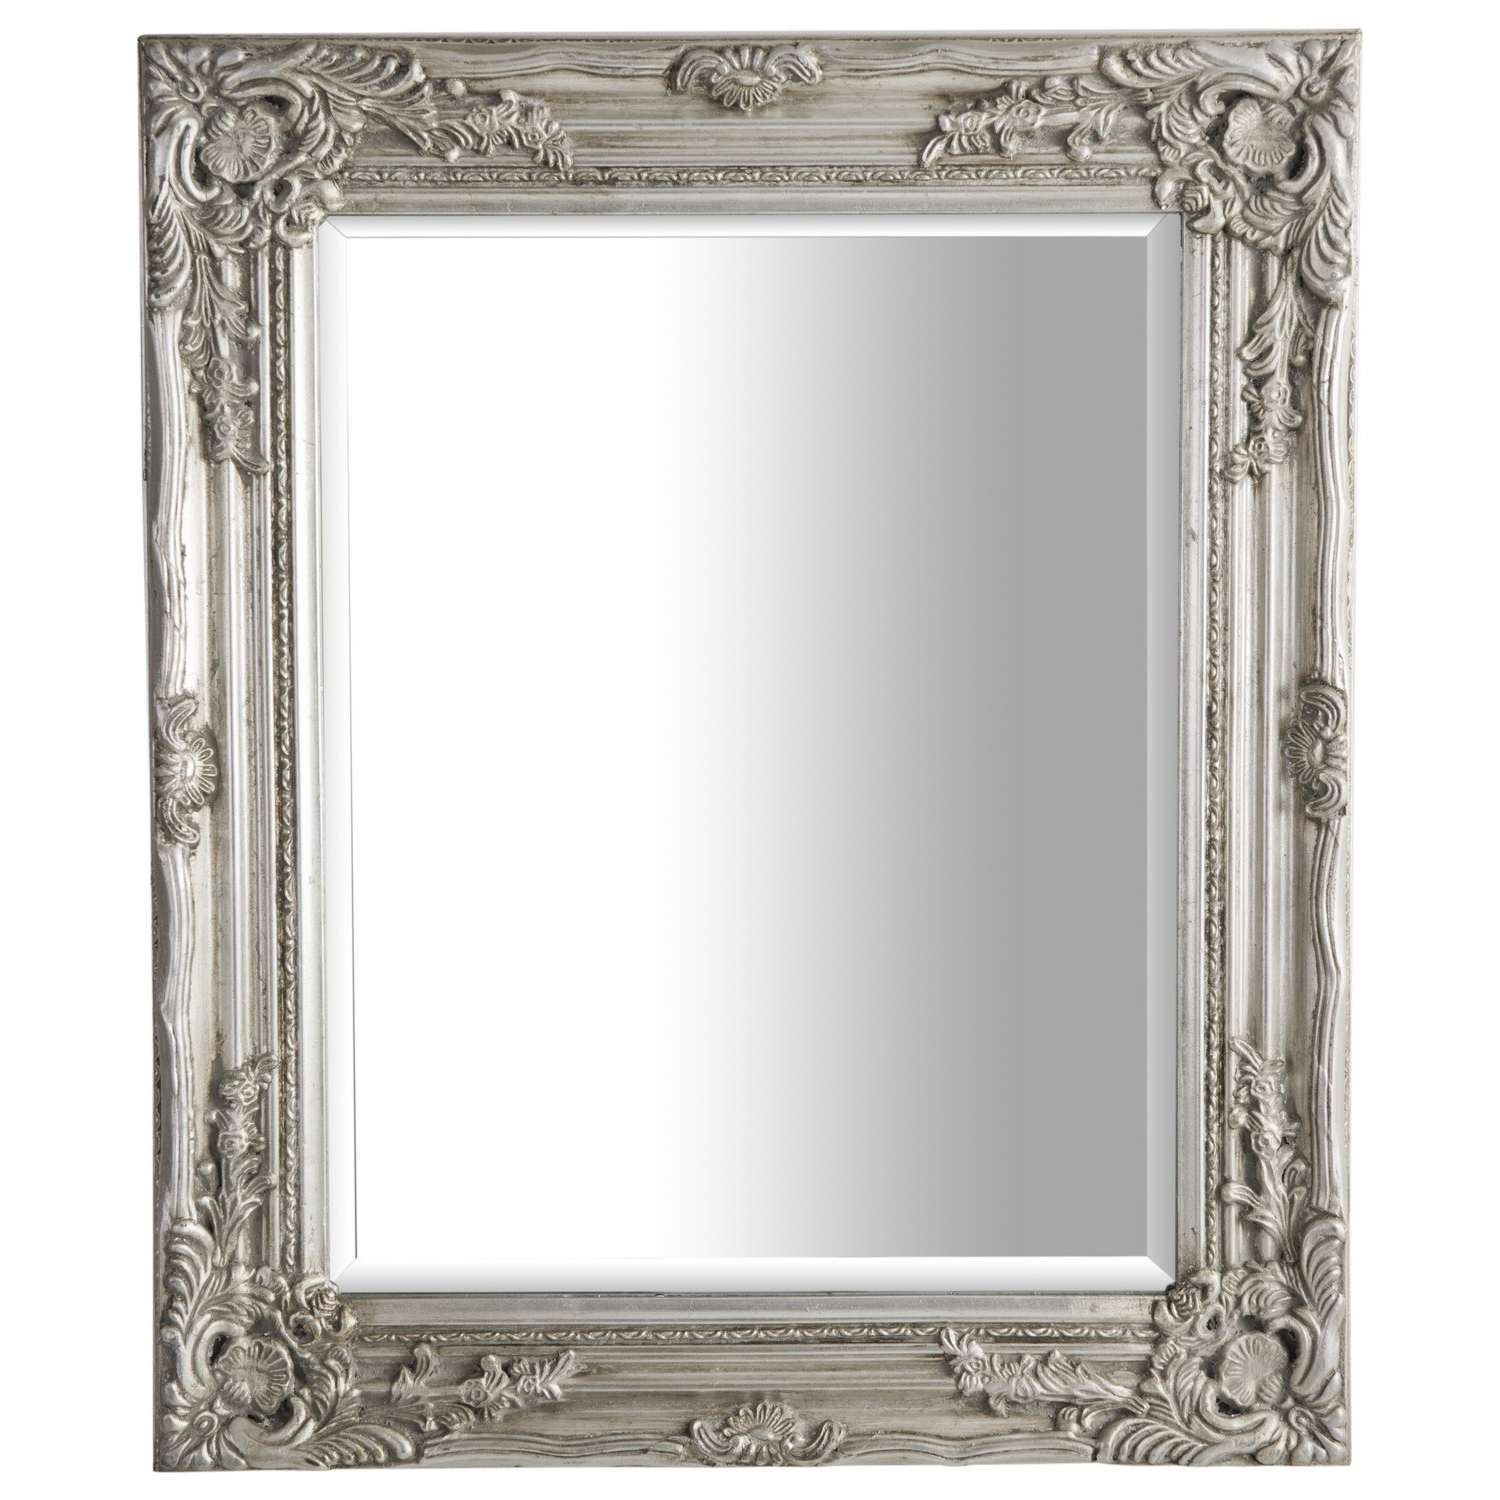 Silver Antique Ornate Mirror Intended For Current Vintage Wall Mirrors (View 13 of 20)